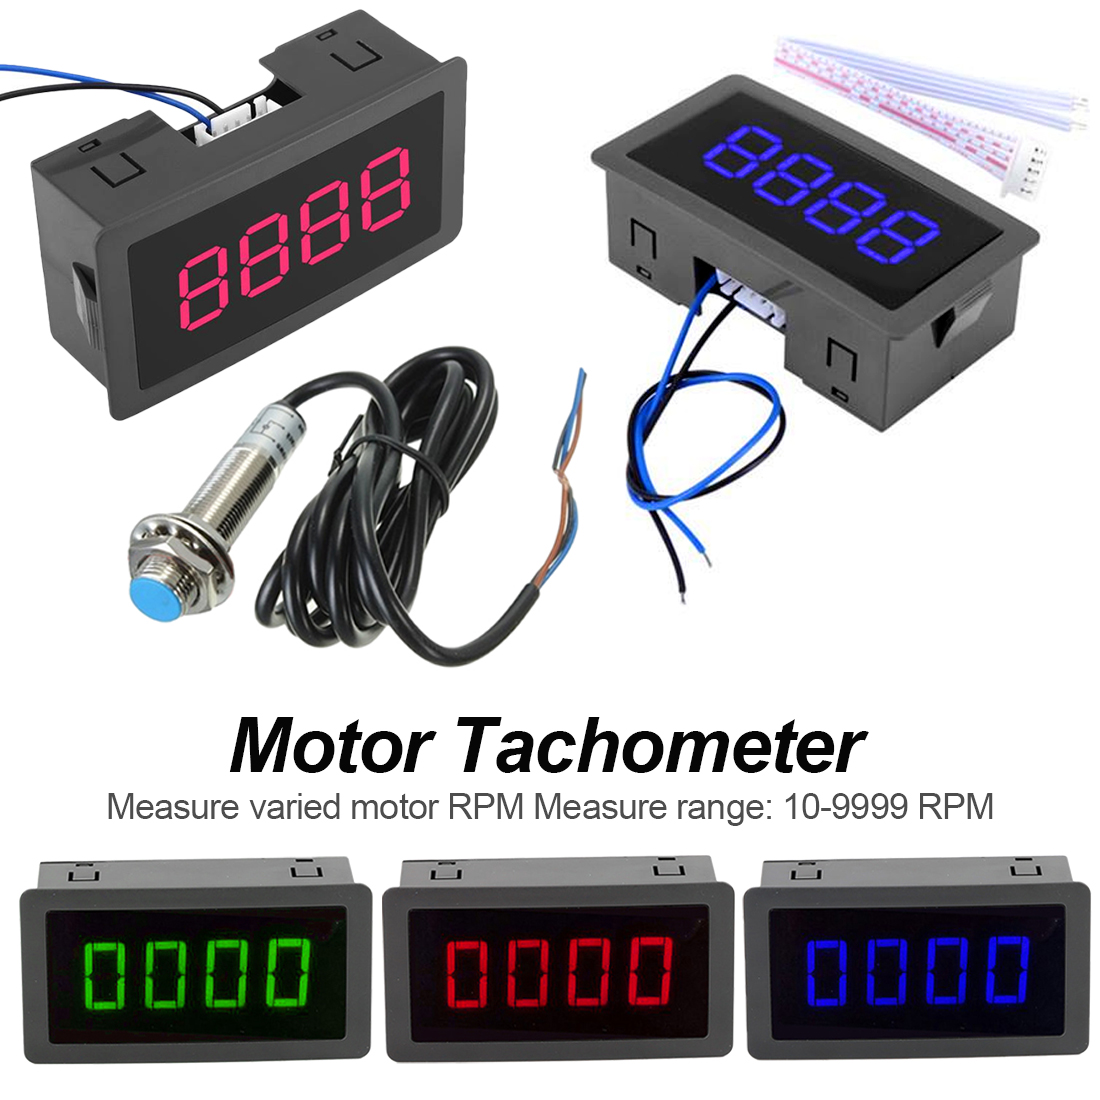 4 Digit Tachometer RPM Speed Meter With Red Green Blue LED Hall Switch Proximity Switch Sensor Guage 10-9999 RPM